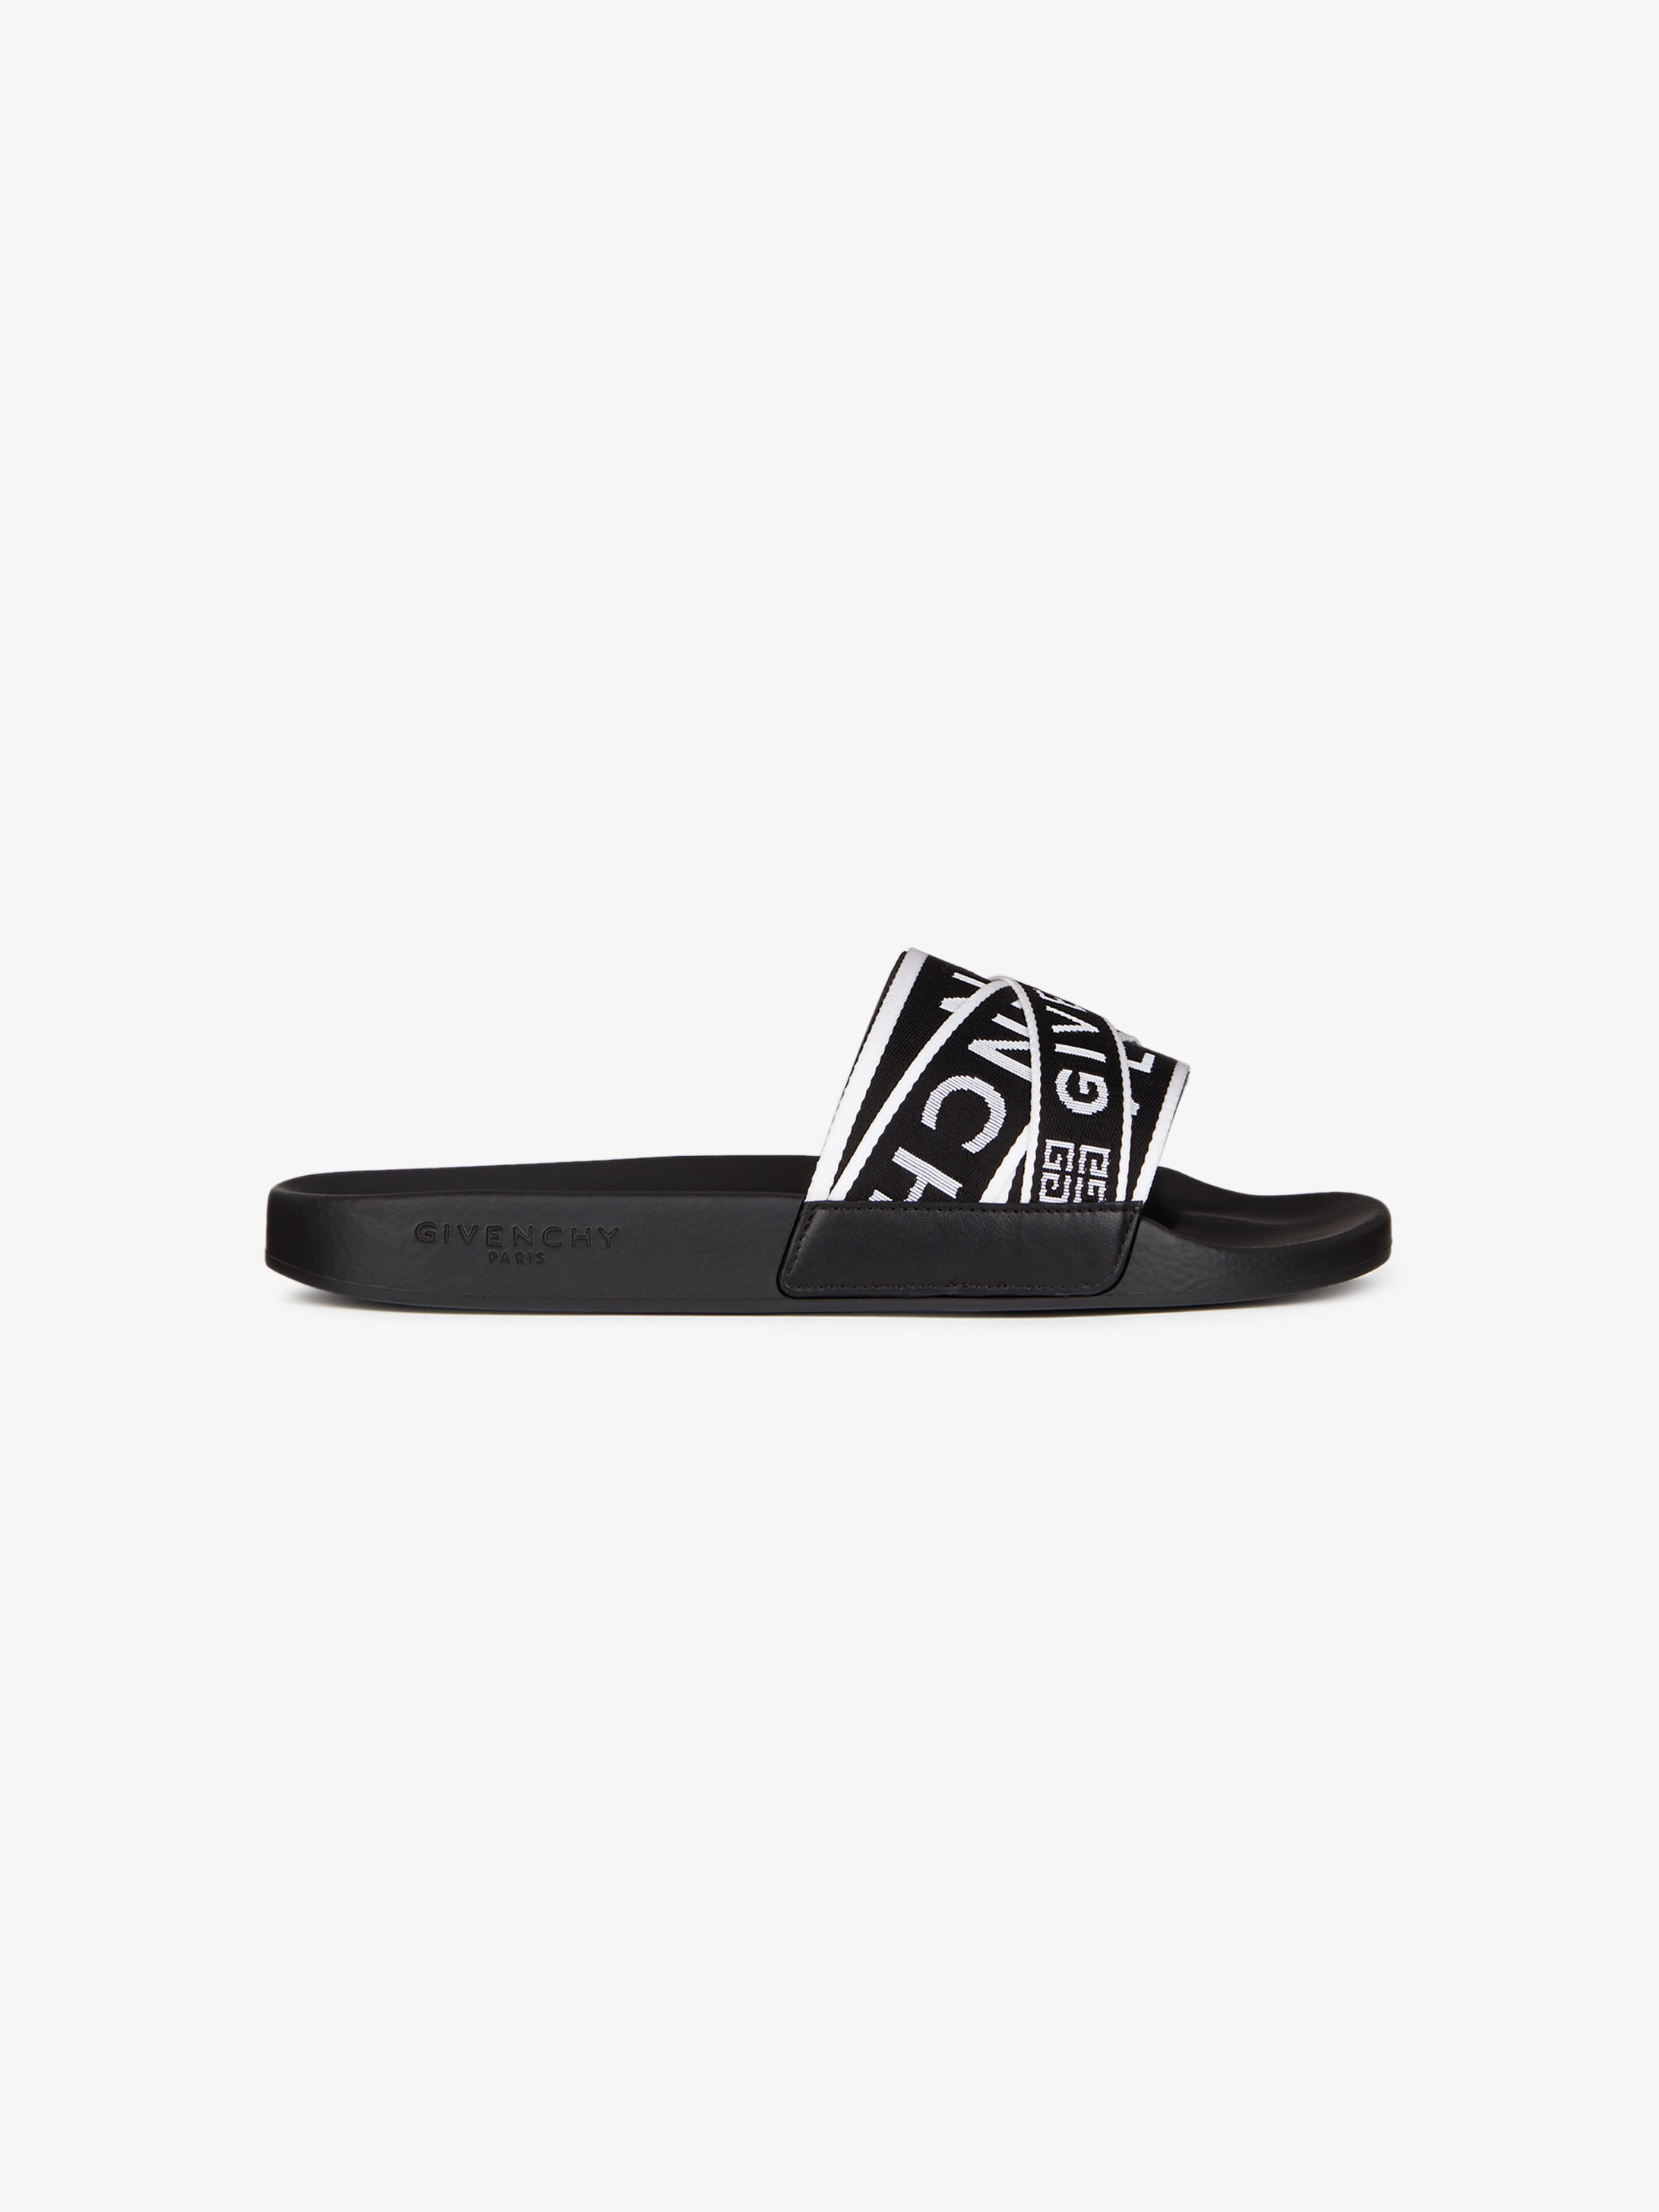 GIVENCHY 4G webbing sandals in rubber